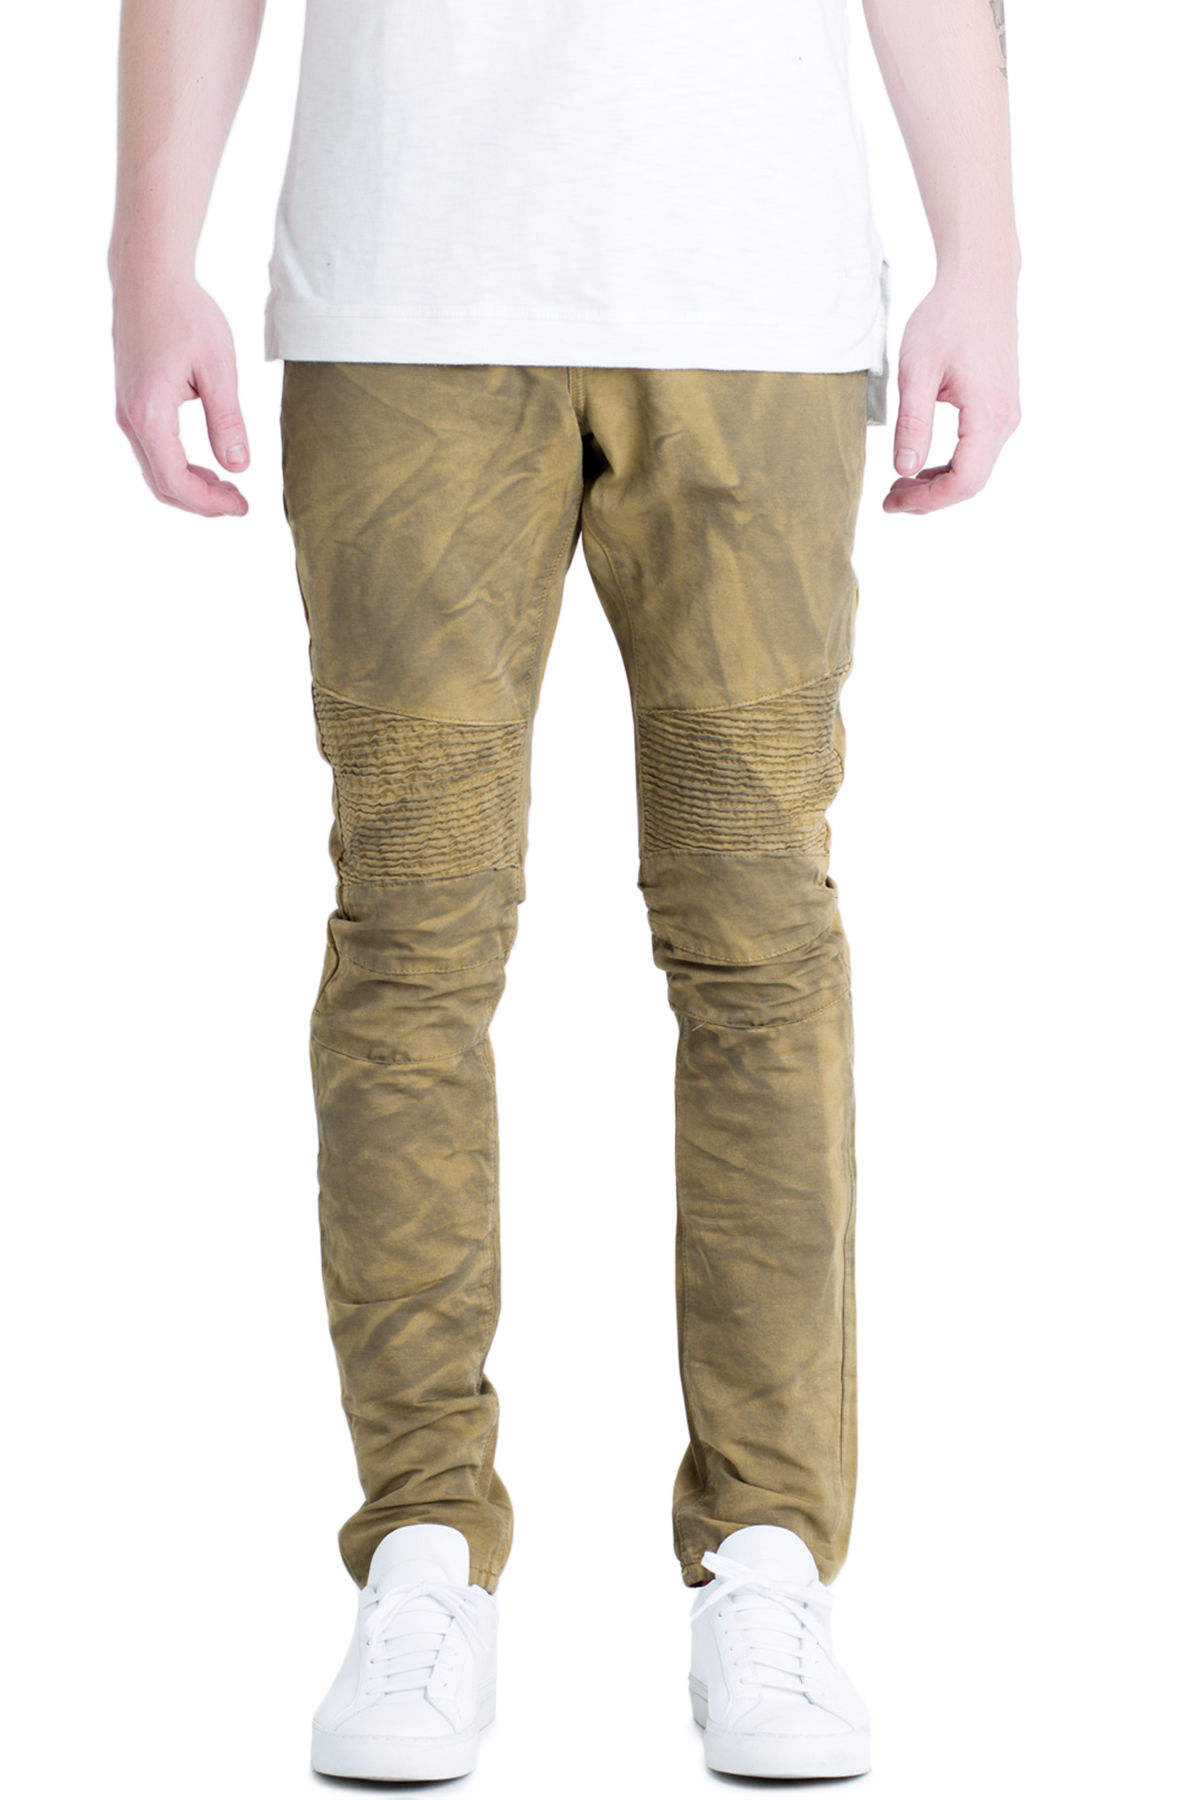 Image of The Gacy Biker Denim Jeans in Olive